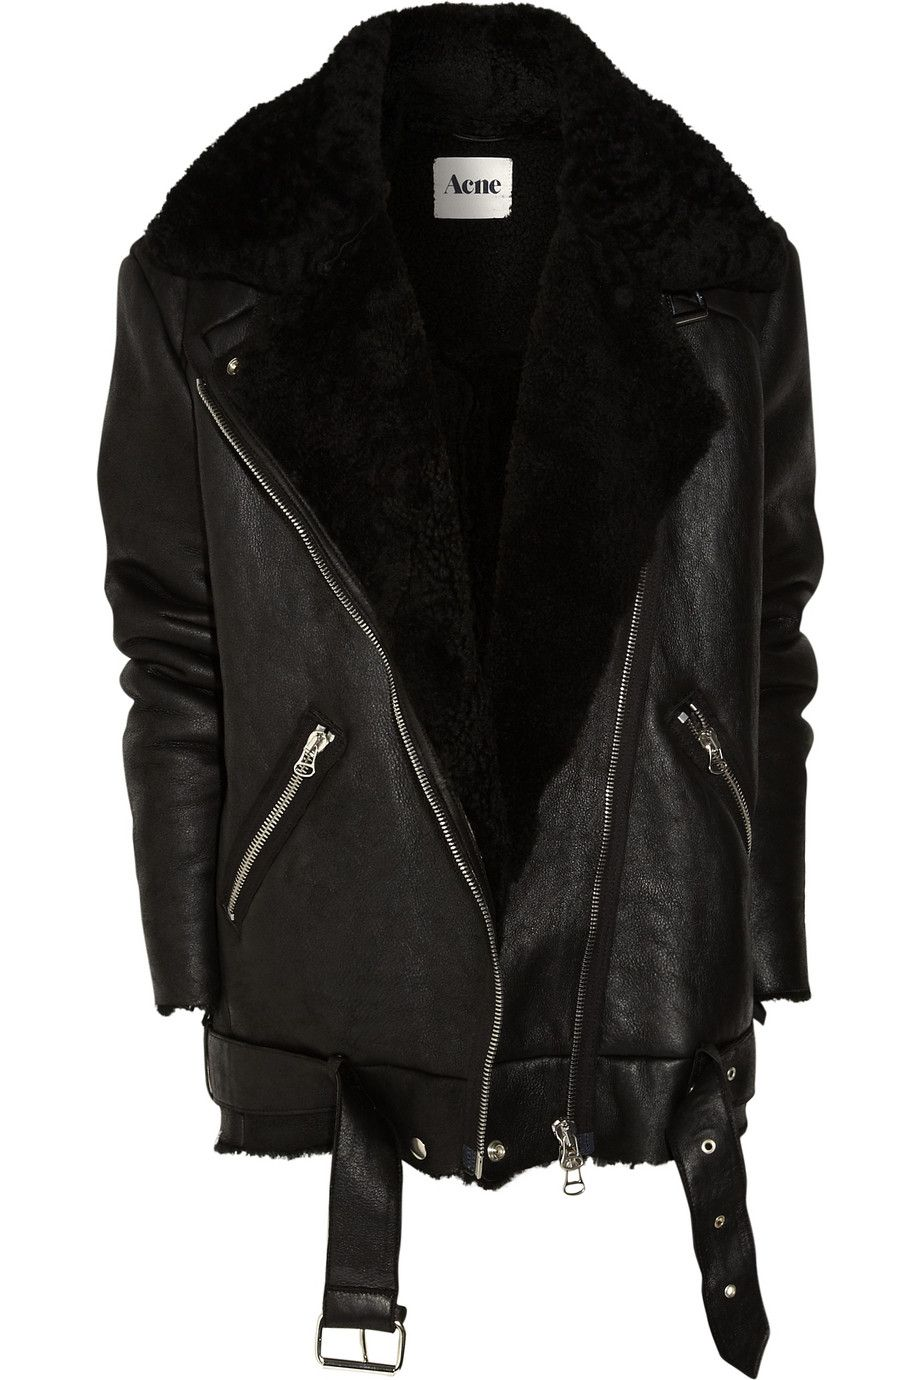 Acne Velocite shearling oversized aviator jacket 2,480